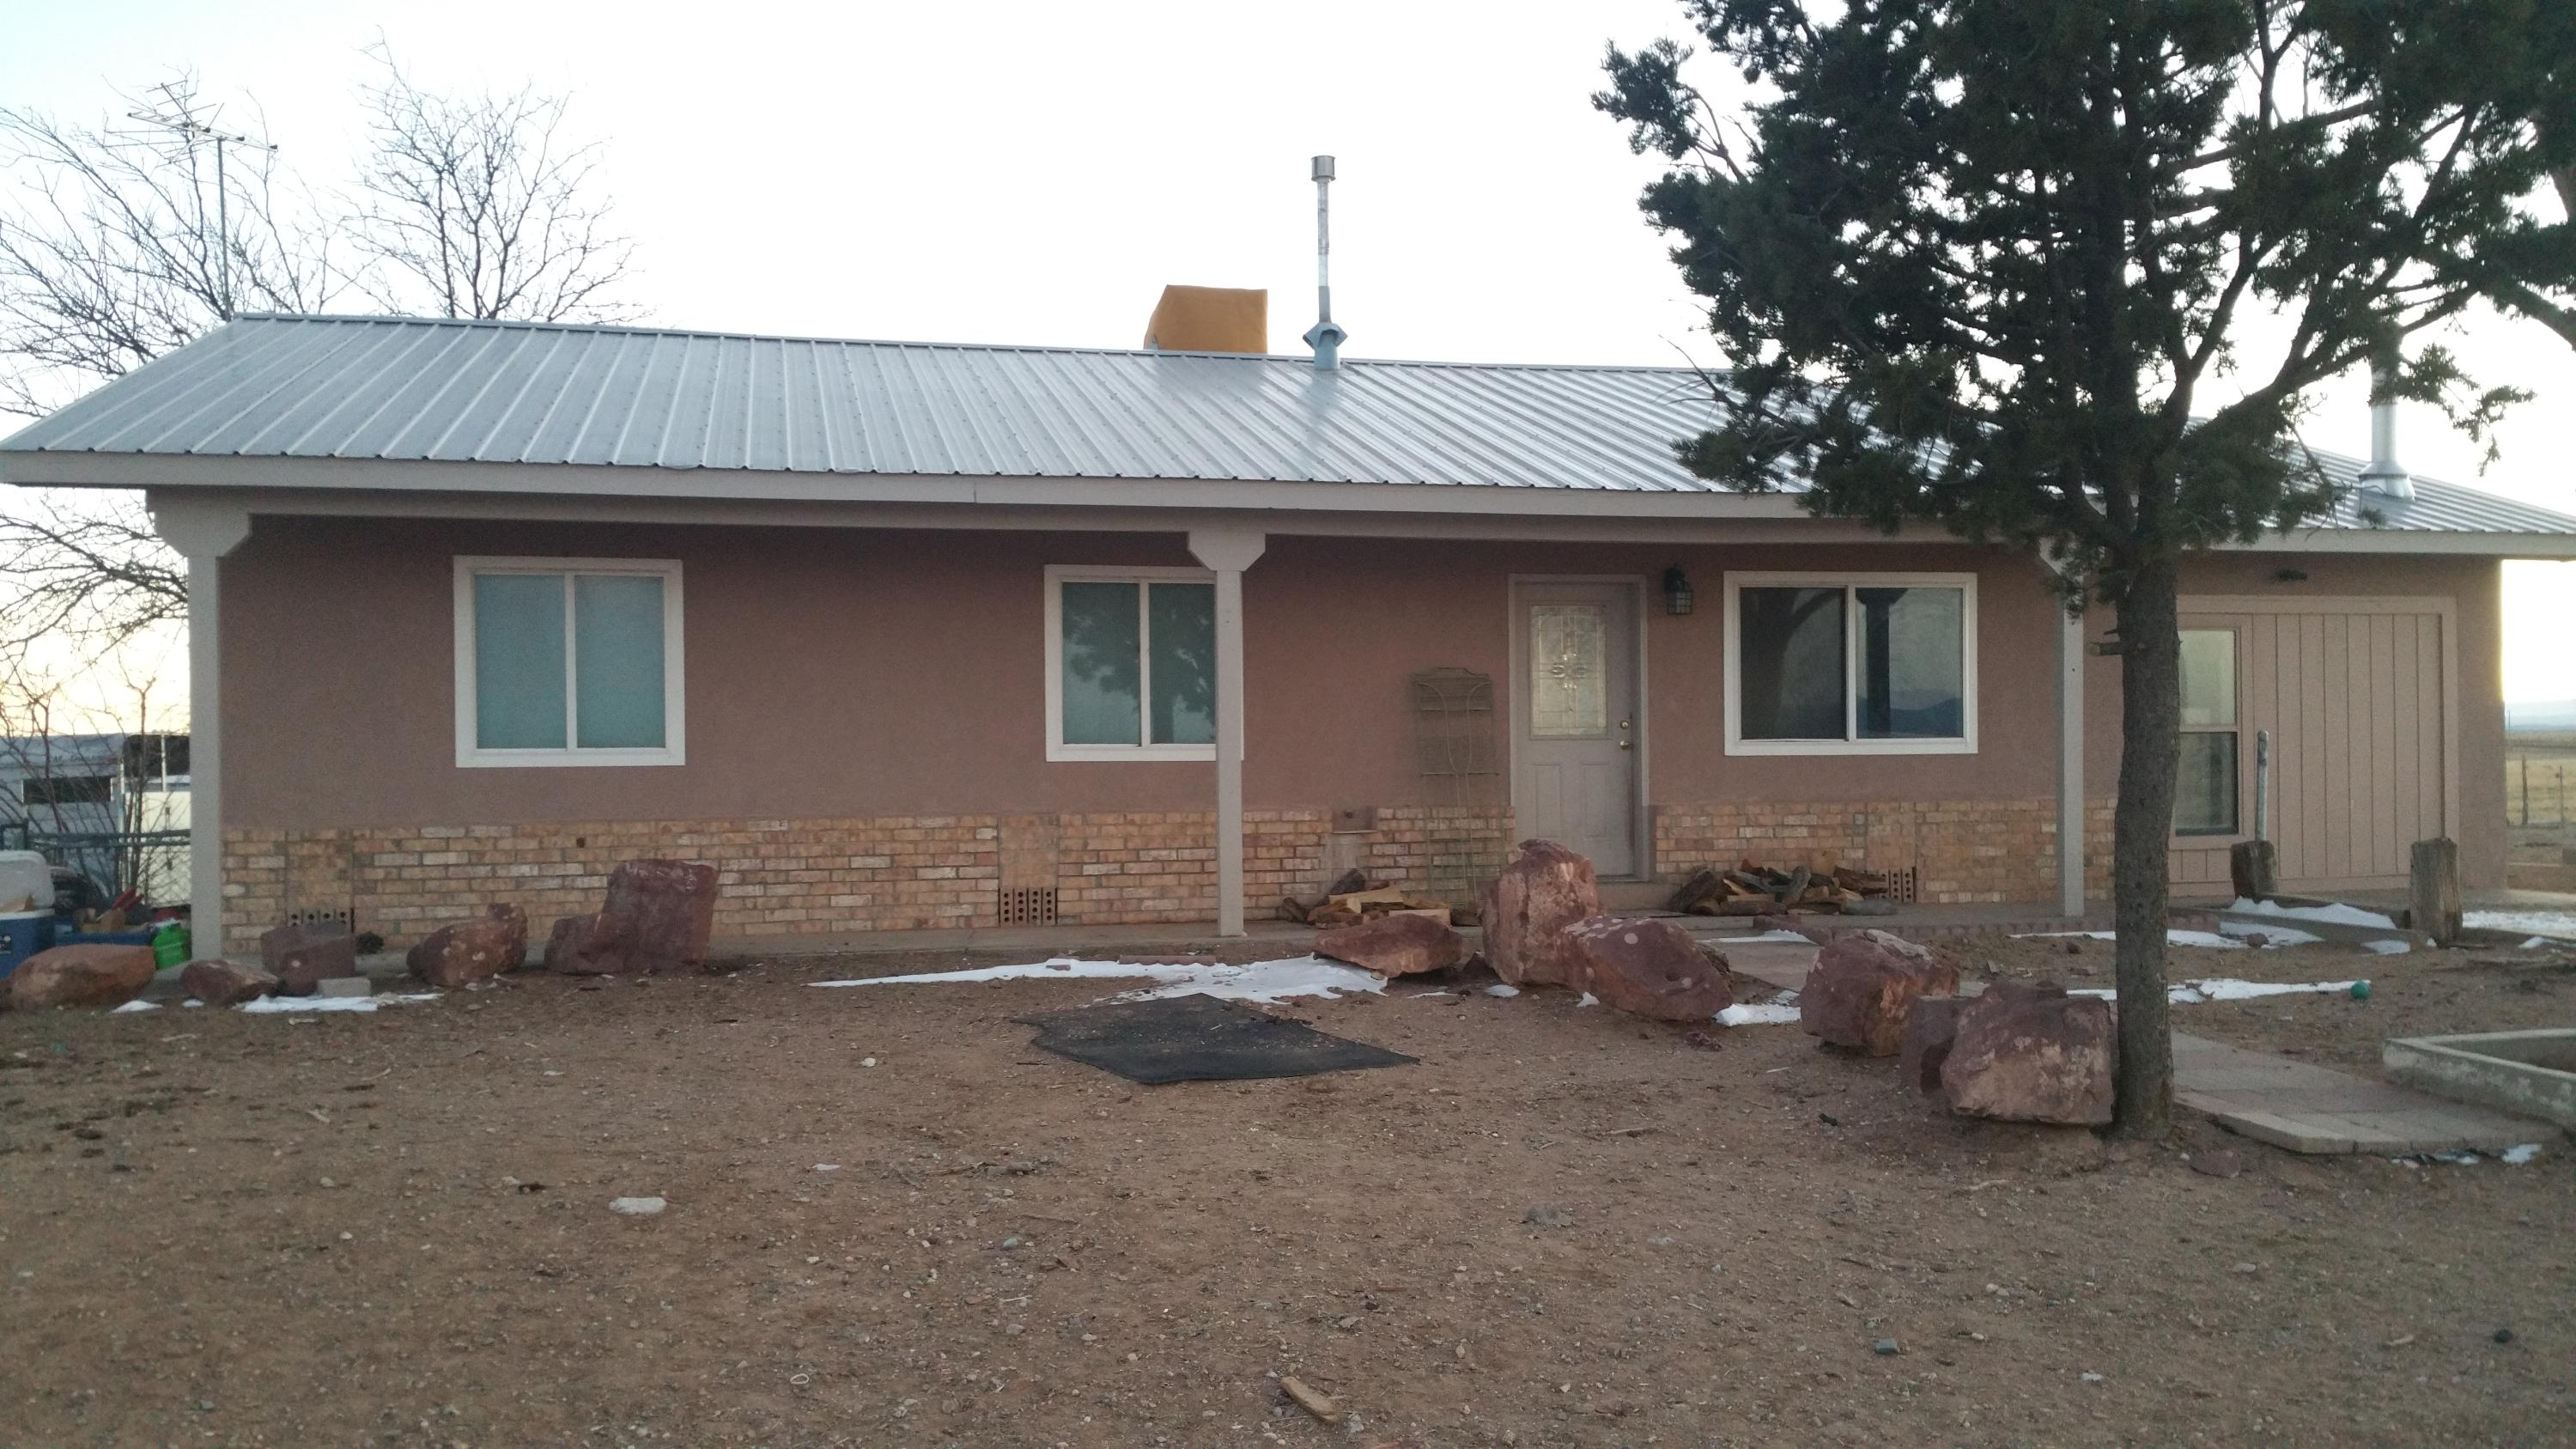 Bring your horses, pets, & enjoy the fully fenced unrestricted property.  Short drive to Albuquerque, Sandia Mountain, Sandia Labs, Kirkland AFB & newer horse arena in Stanley, NM.  Enjoy the beautiful sunsets & views!  Covered patio could be your new outdoor kitchen or fire pit retreat. Metal 30' X 30' Horse Barn, 2 roll up doors, side walk in door & 2 stalls. Fully fenced 5' non-climb horse fence on unrestricted  approx 1.5 acres.  2018 new deep well, Jotul wood stove, & water heater.  2019 stucco. exterior paint, well house roof & exterior.  2020 new wall oven, recent paint, new den floor, upgrade to covered patio interior & exterior.  many nice upgrades made each year. Move in ready. Welcome Home!